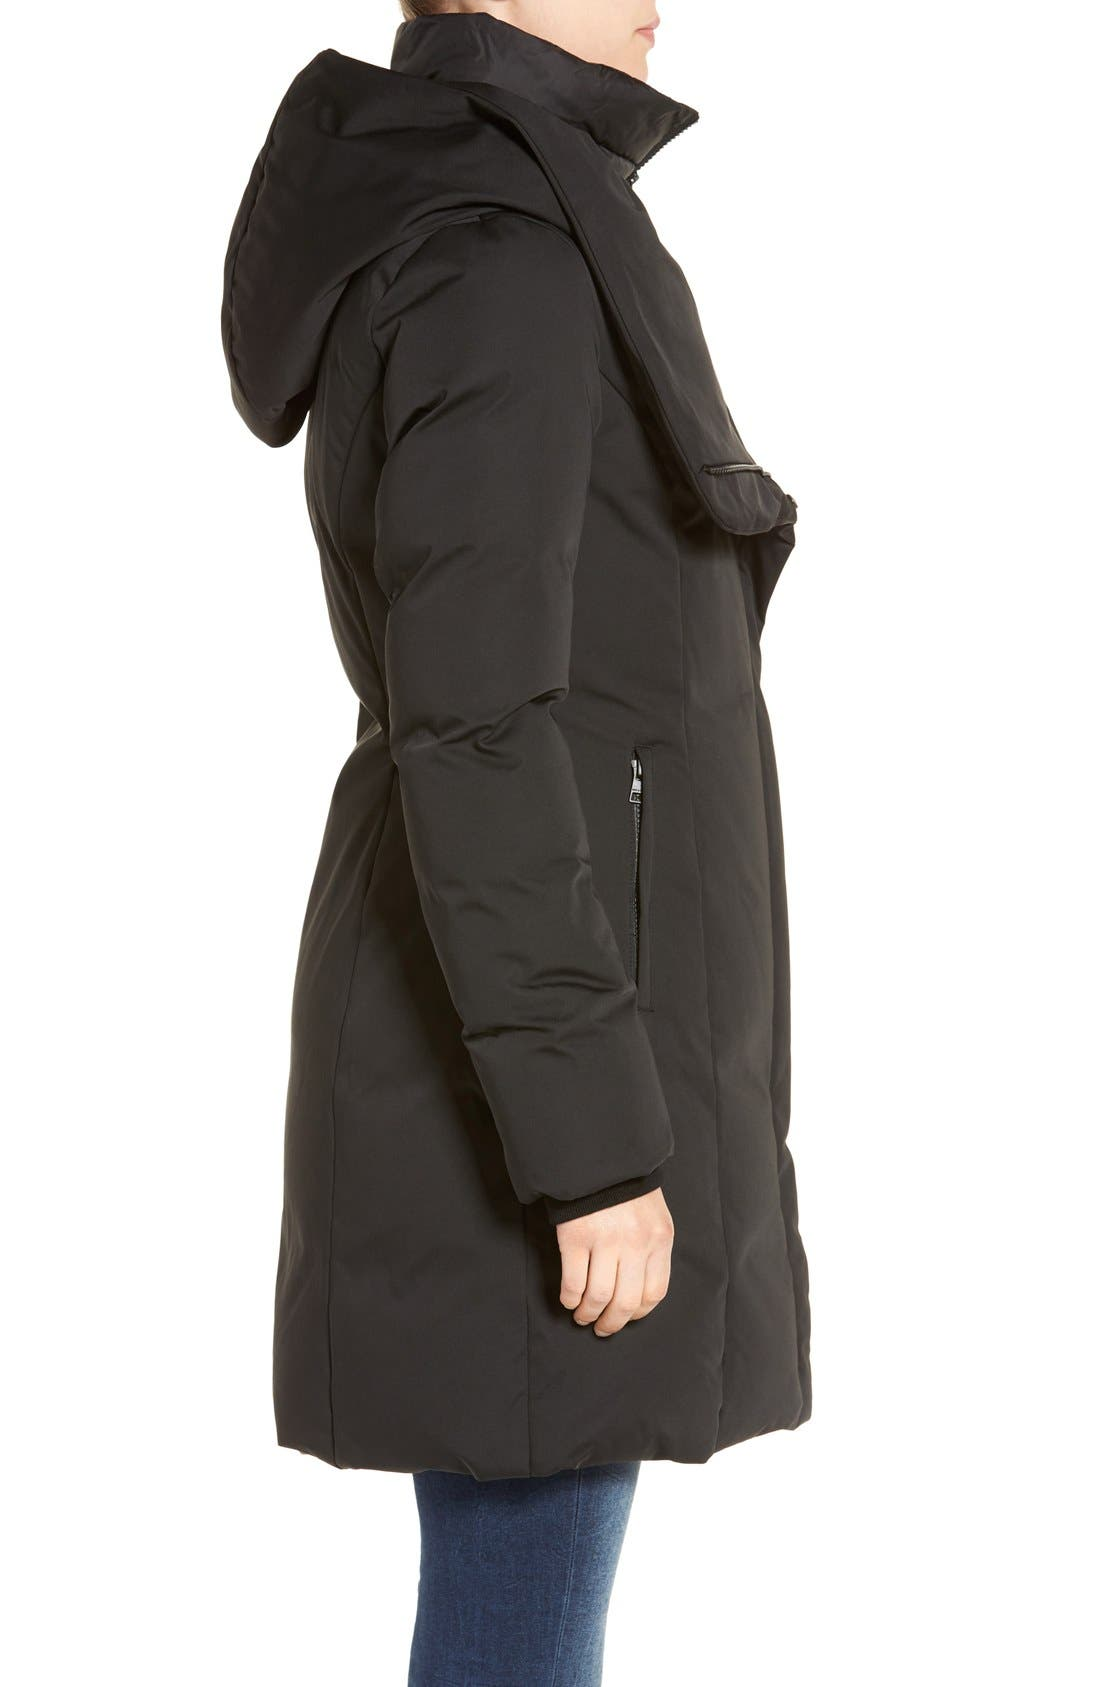 Alternate Image 3  - Soia & Kyo Water Resistant Hooded Down Walking Coat